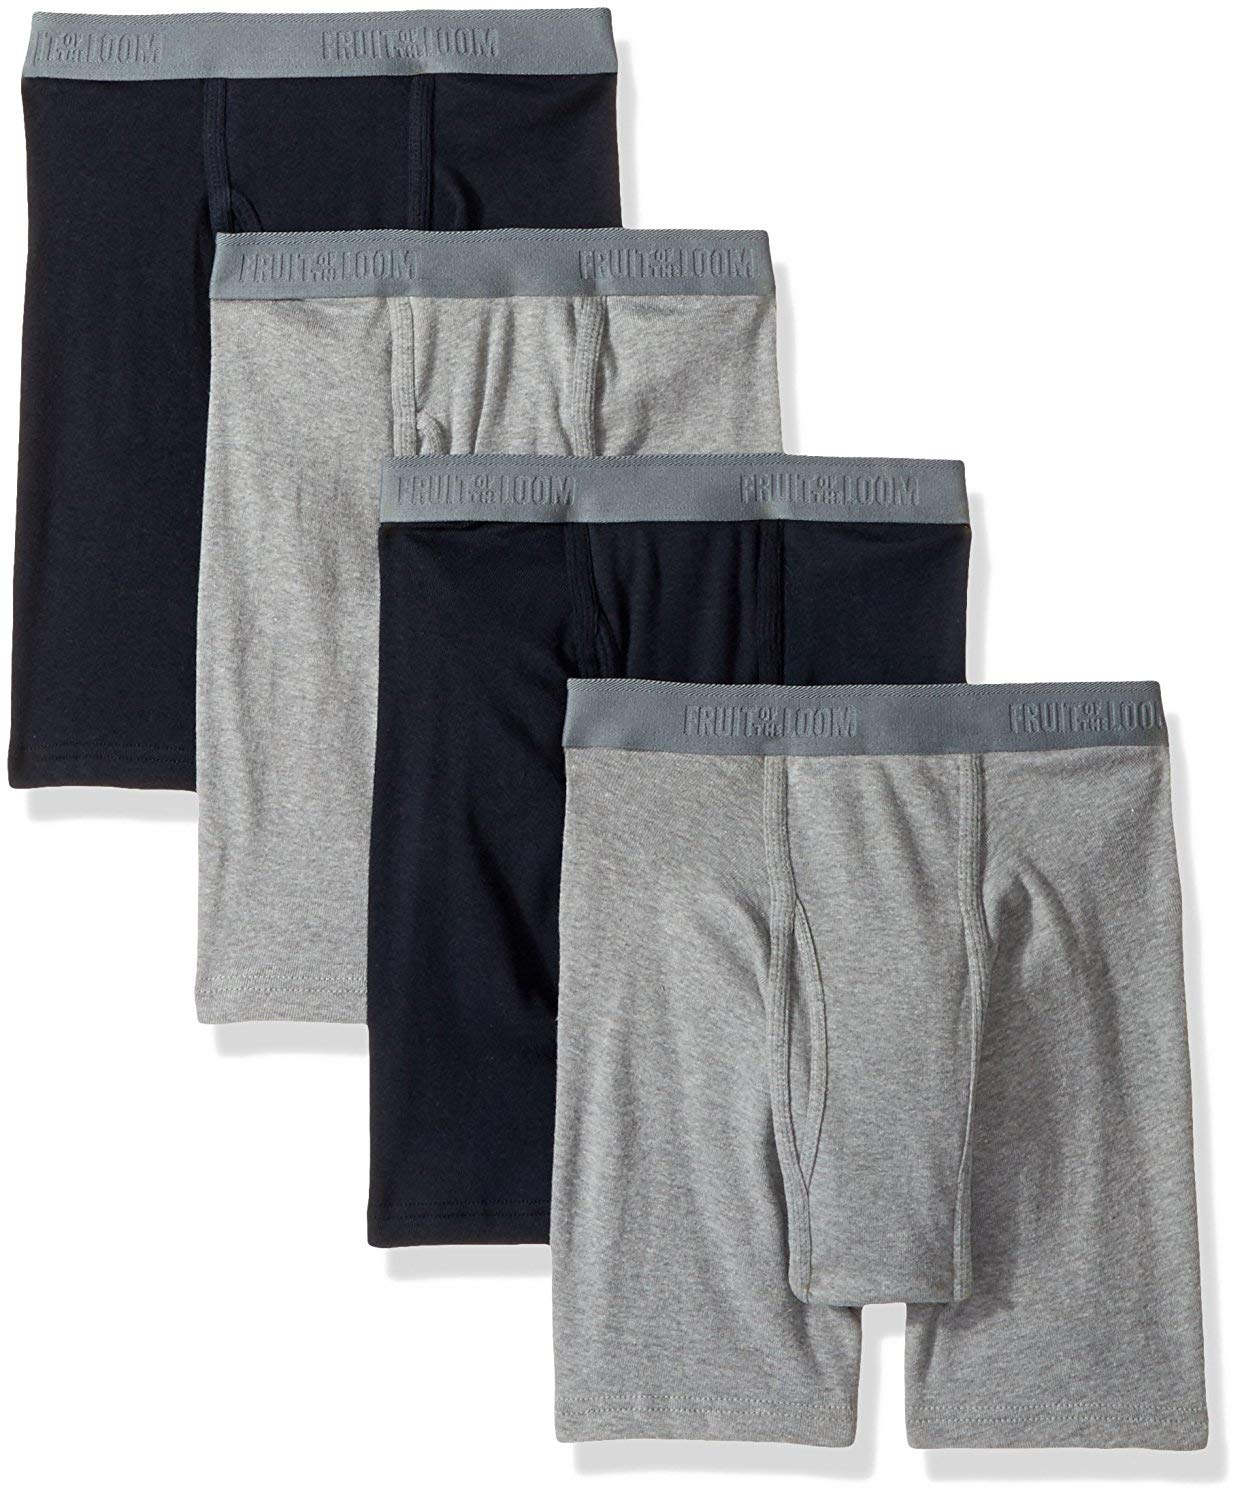 Fruit of The Loom Men's Premium Boxer Brief (4 Pack) (XXX-Large Big, Black/Gray)